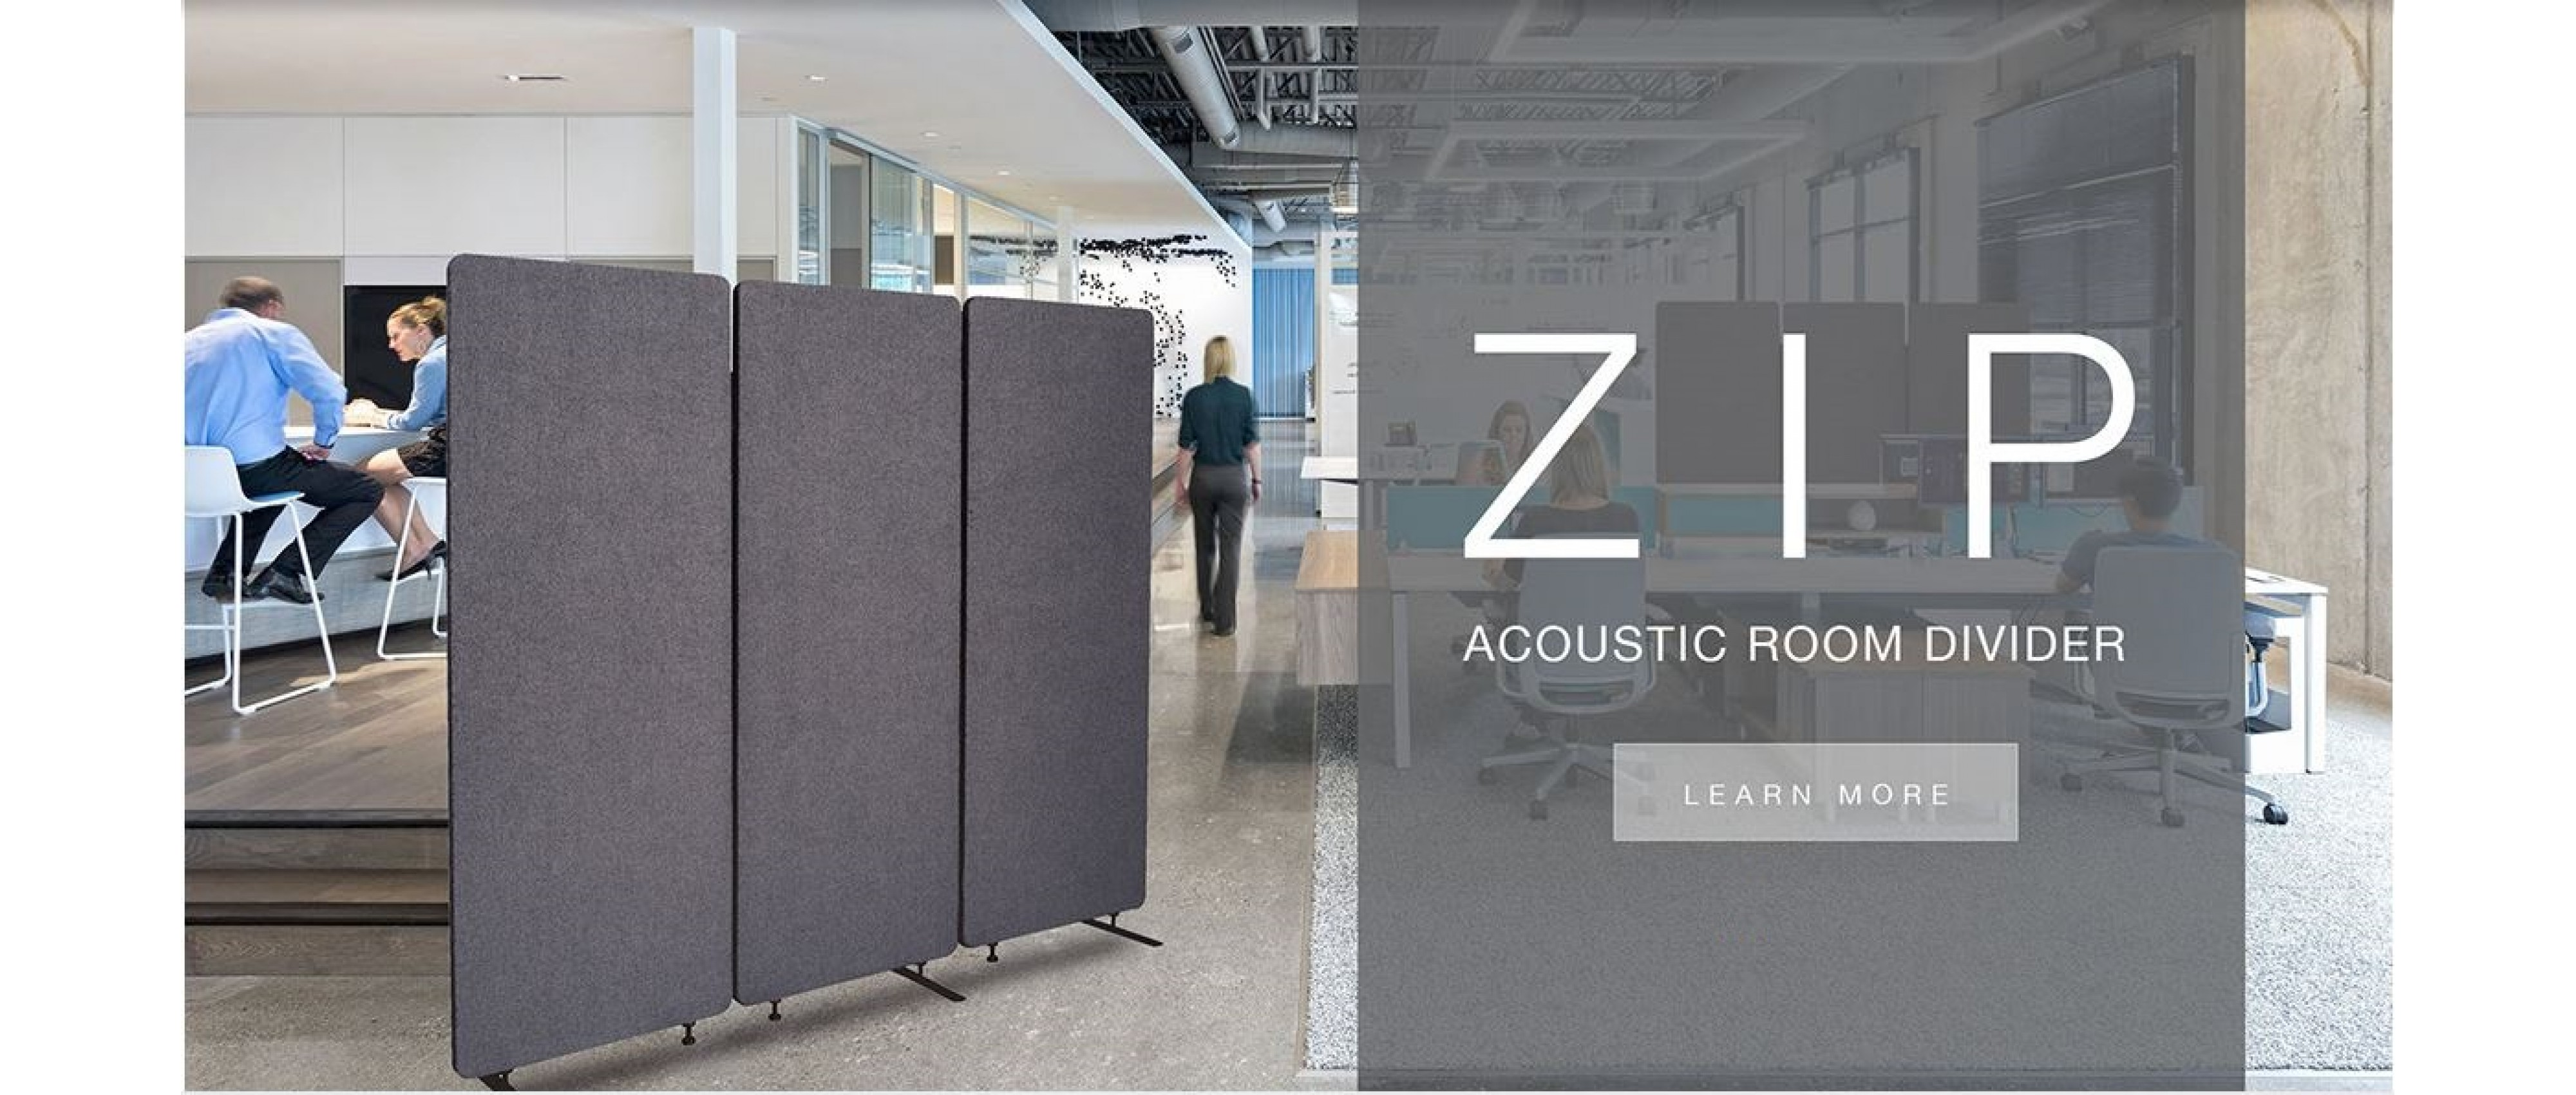 ZIP Acoustic Room Divider